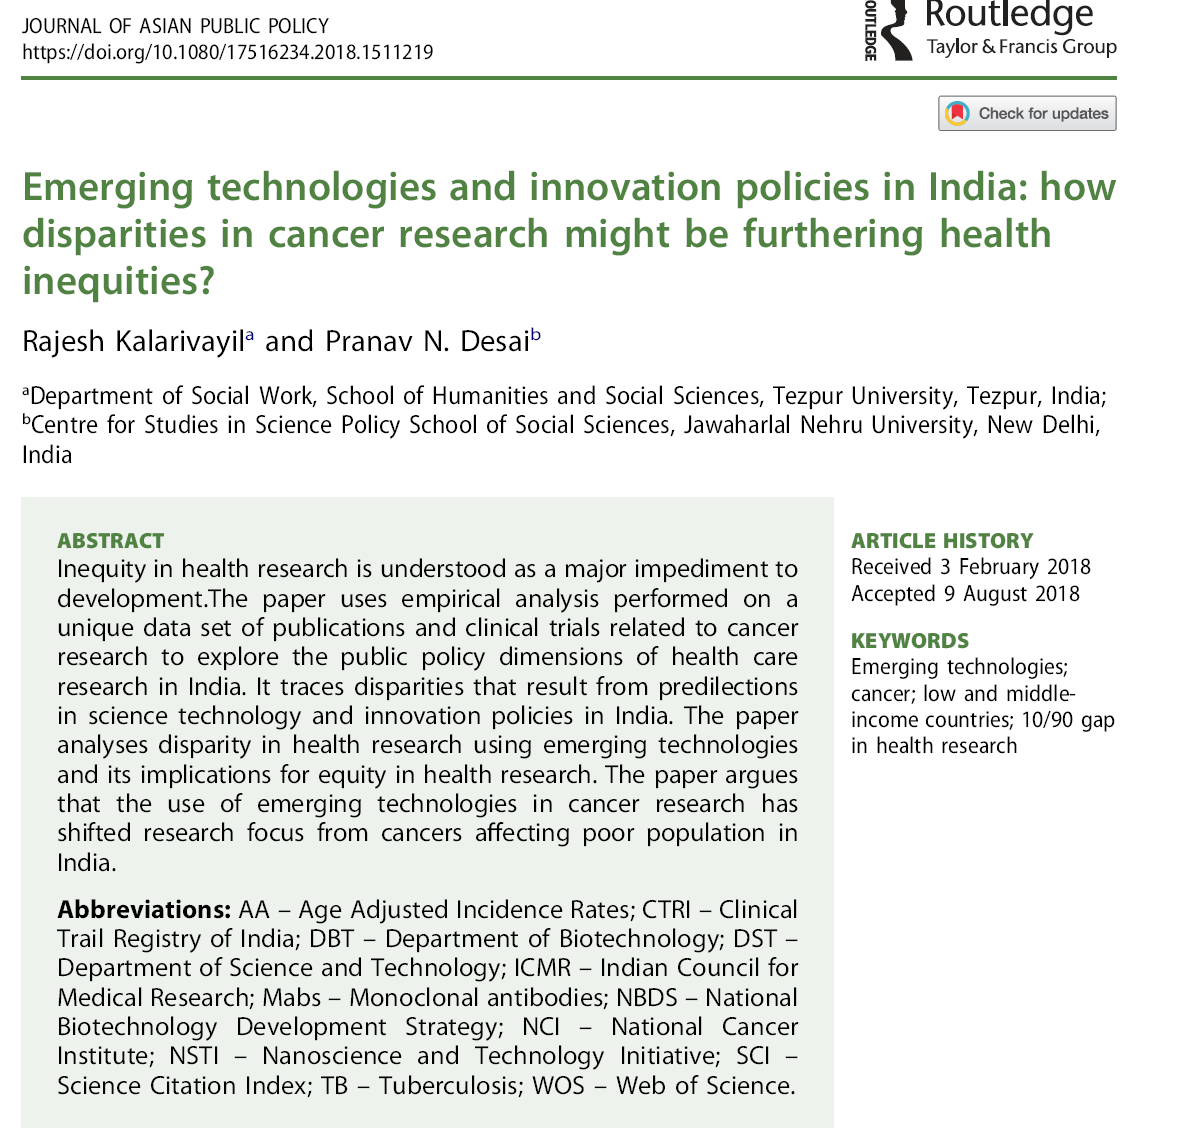 Bricslics 2018 Dc Motor Drives Electrical Study App By Saru Tech The Paper Argues That Use Of Emerging Technologies In Cancer Research Has Shifted Focus From Cancers Affecting Poor Population India